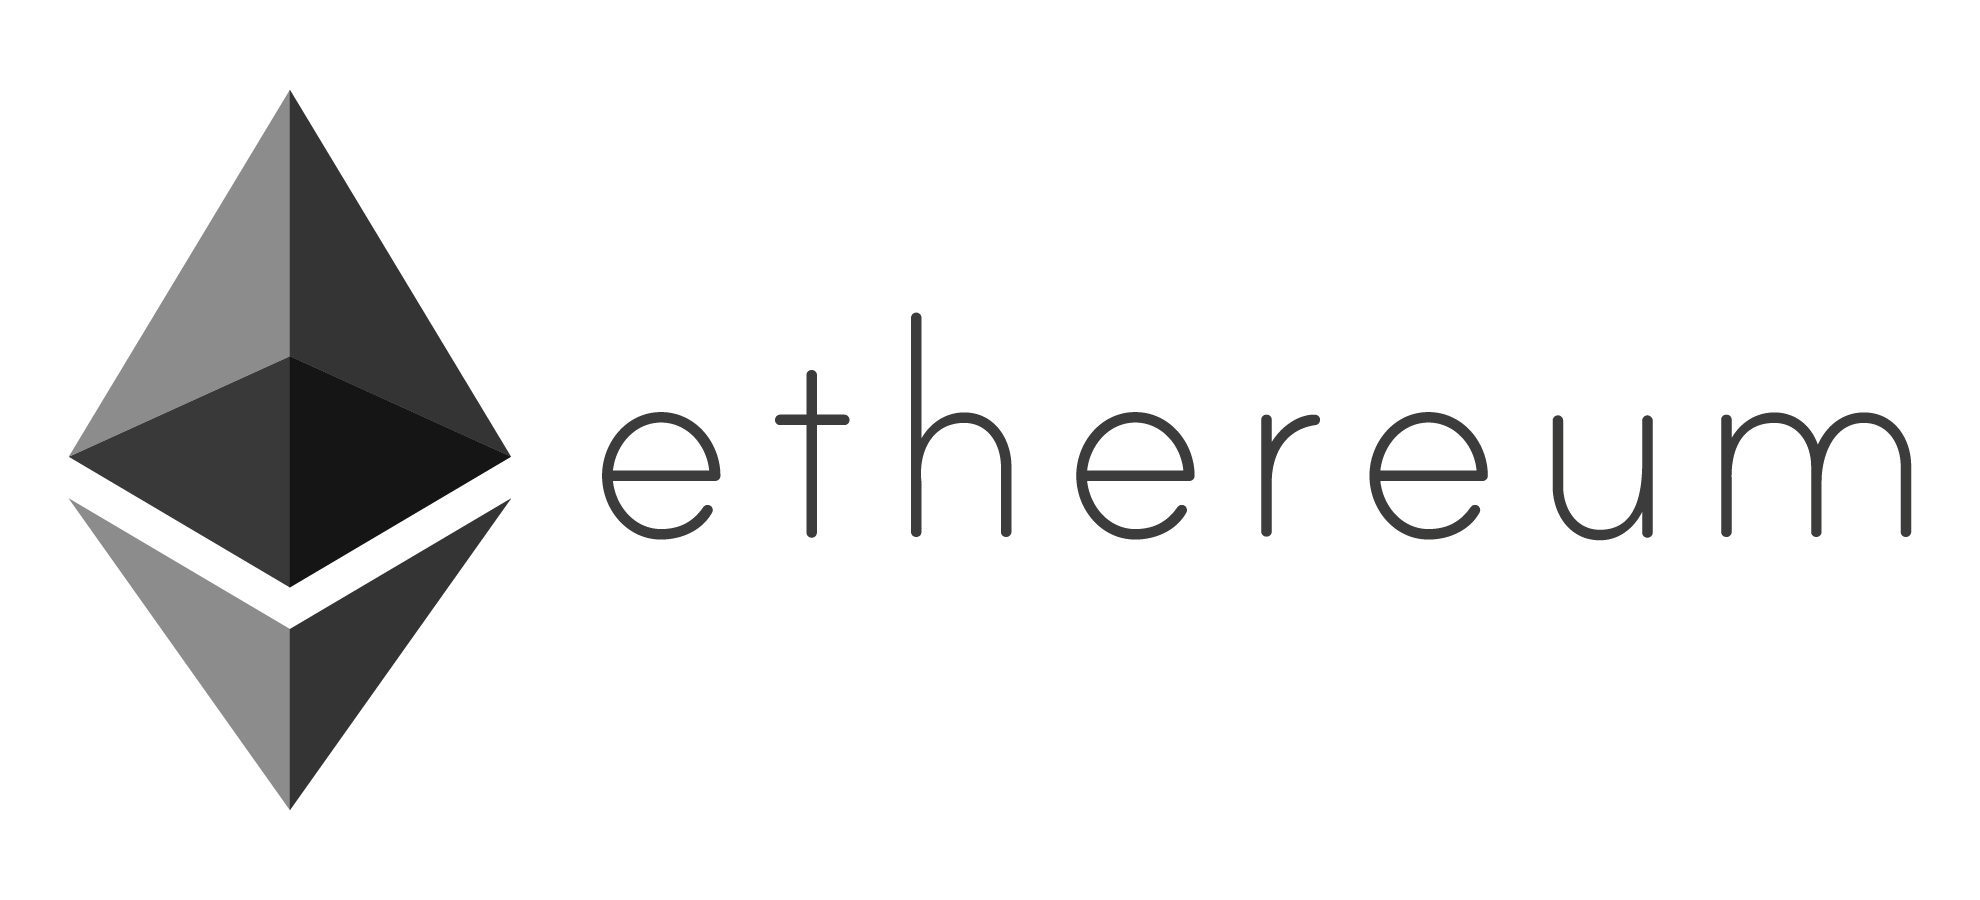 ethereum logo | | Vector Images Icon Sign And Symbols